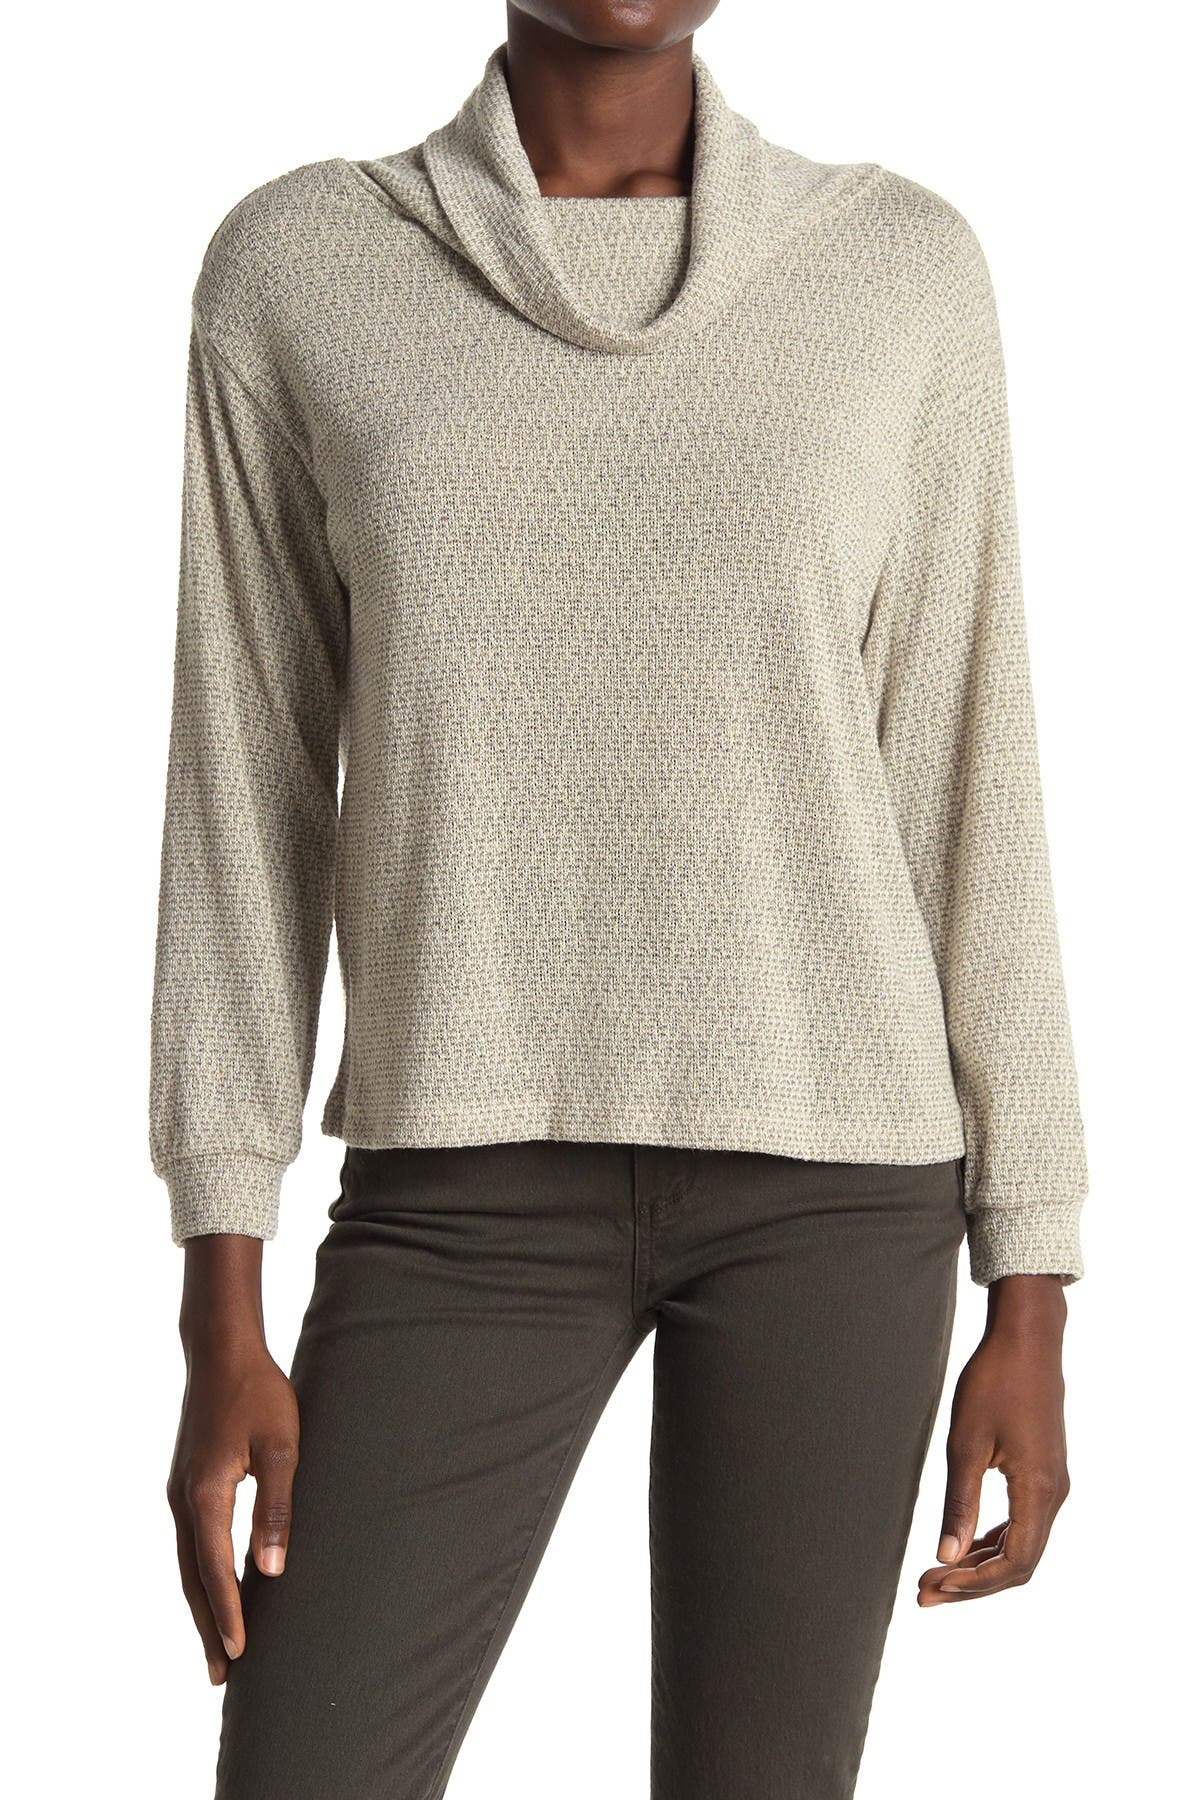 Image of ALL IN FAVOR Cowl Neck Pullover Sweater